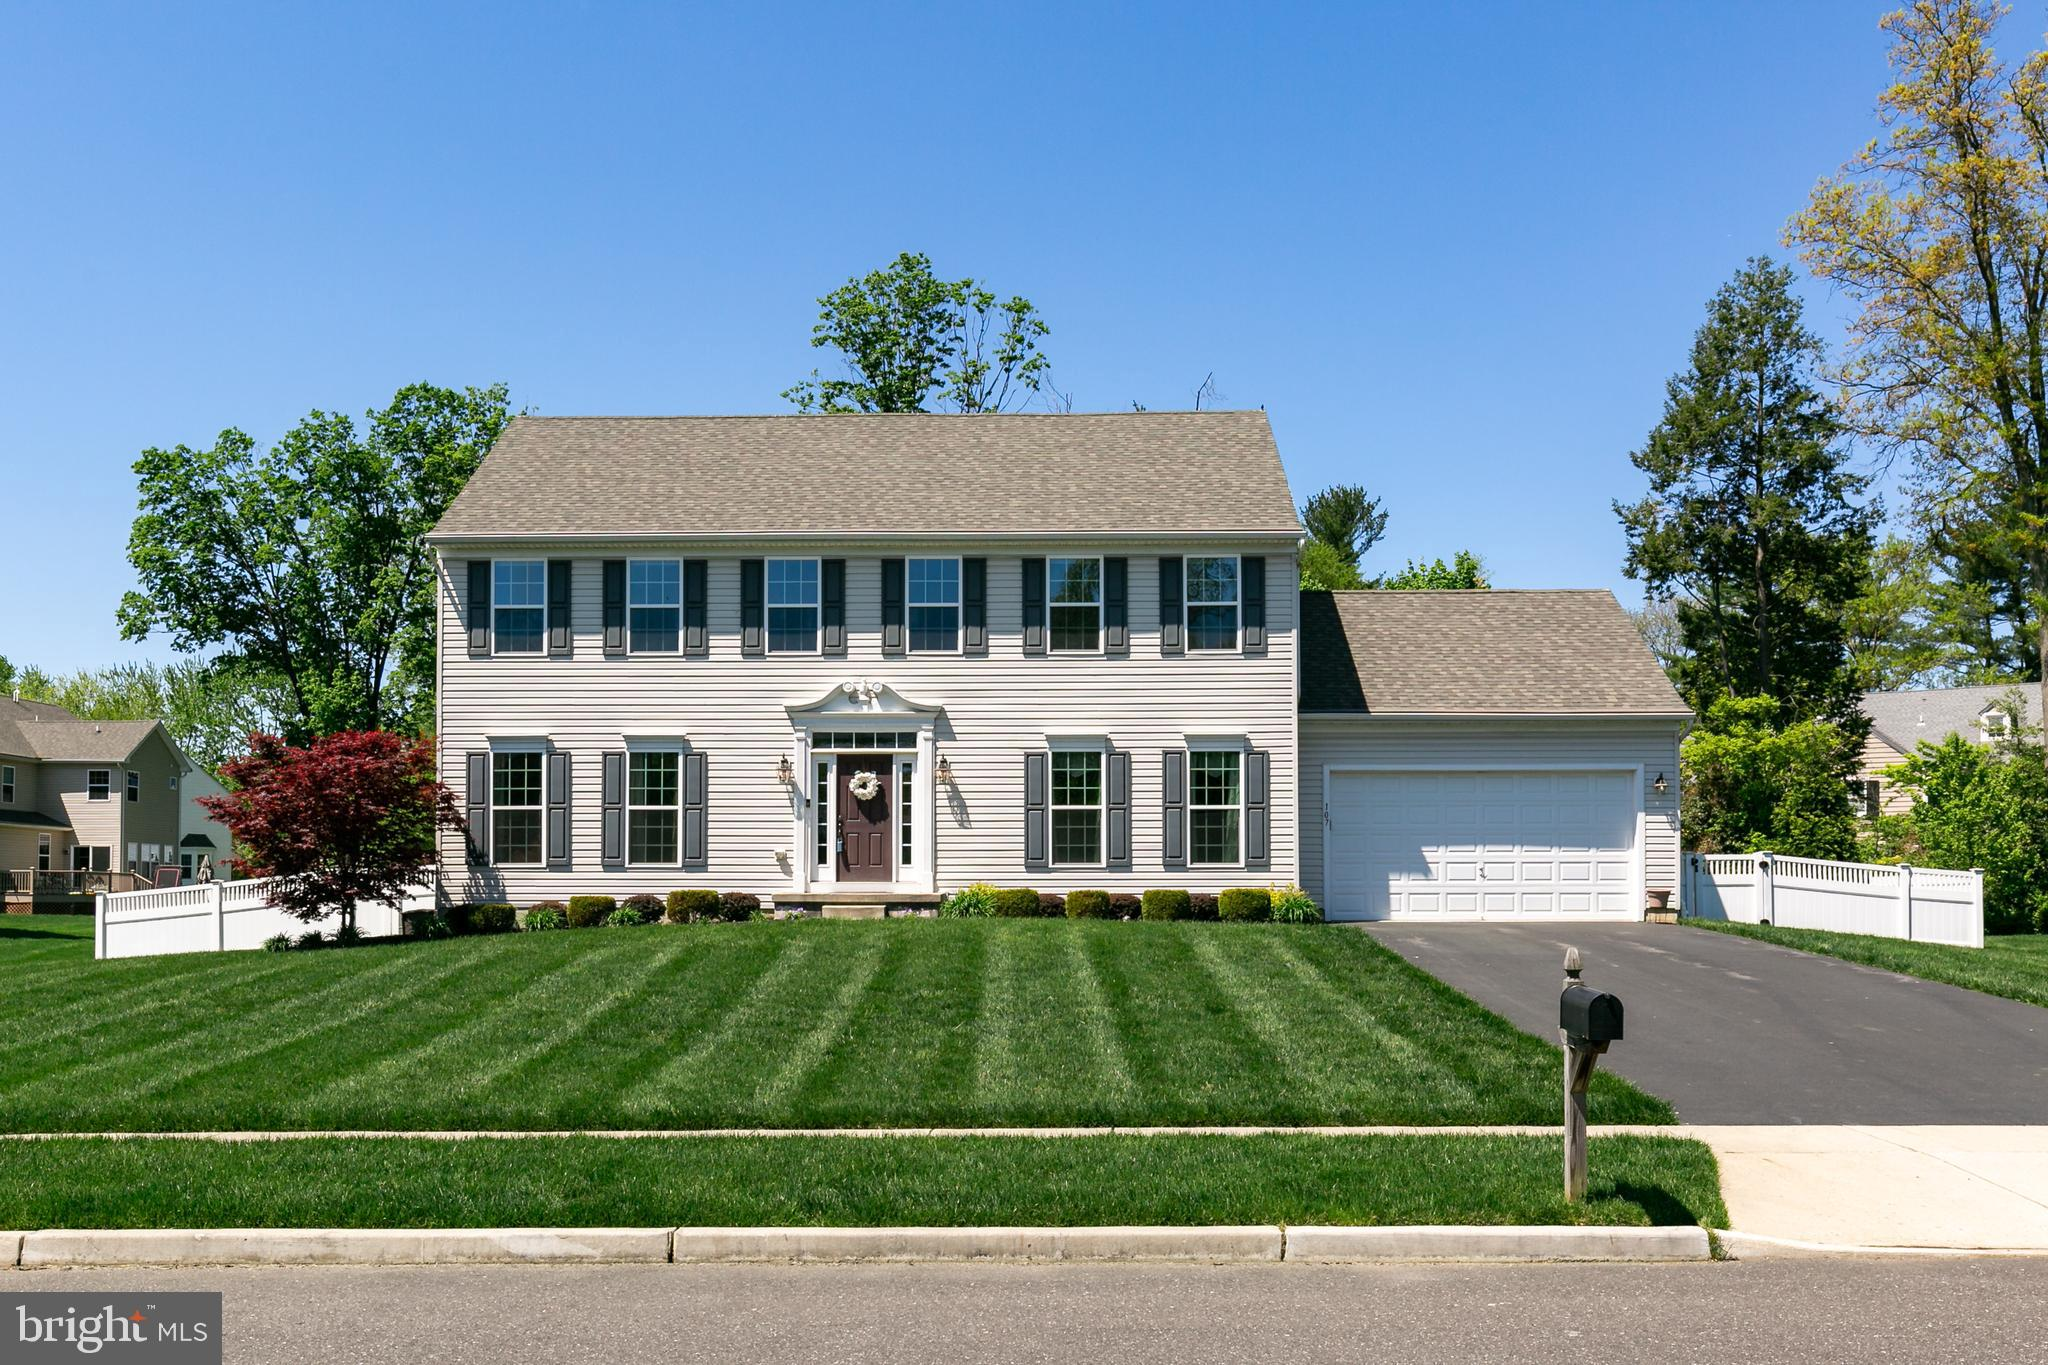 107 GREEN BRIAR COURT, CINNAMINSON, NJ 08077